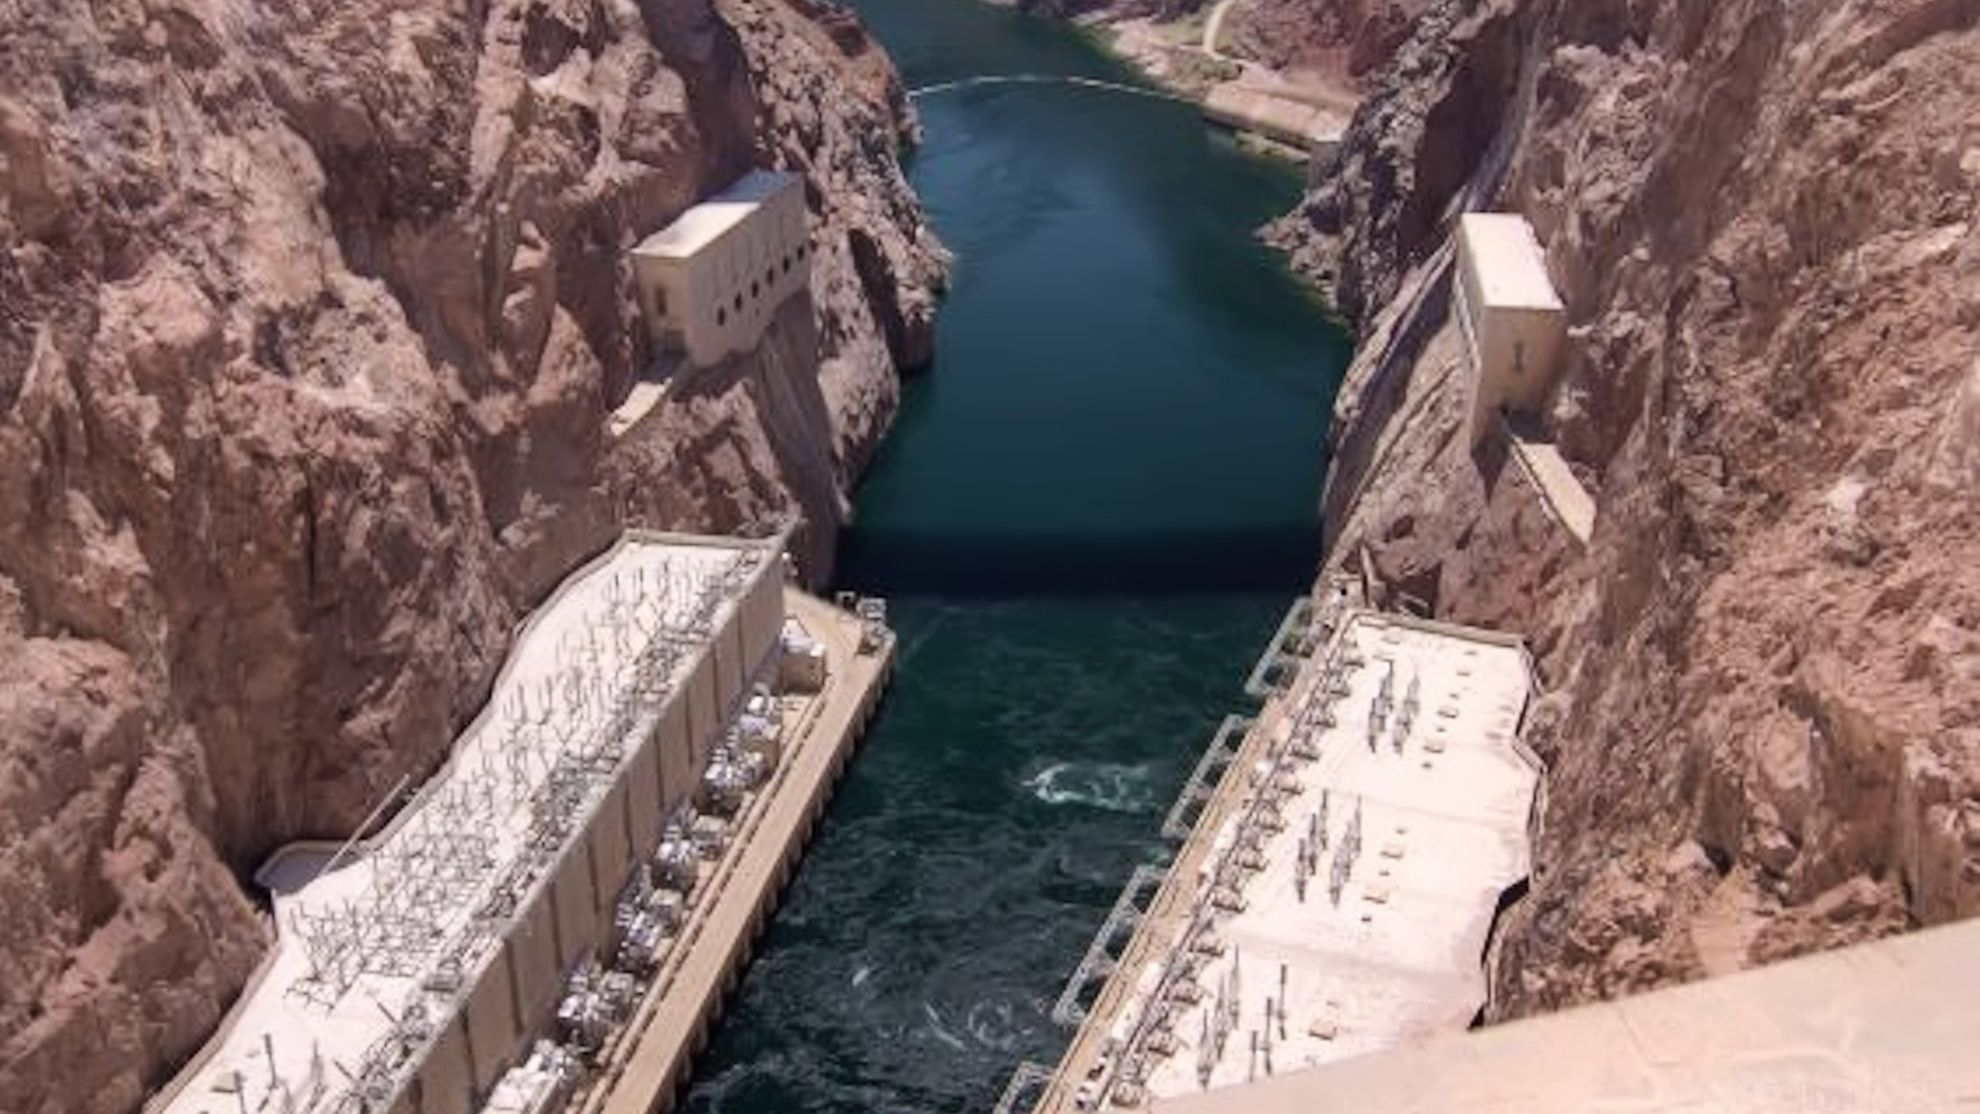 Colorado River as seen from top of Hoover Dam